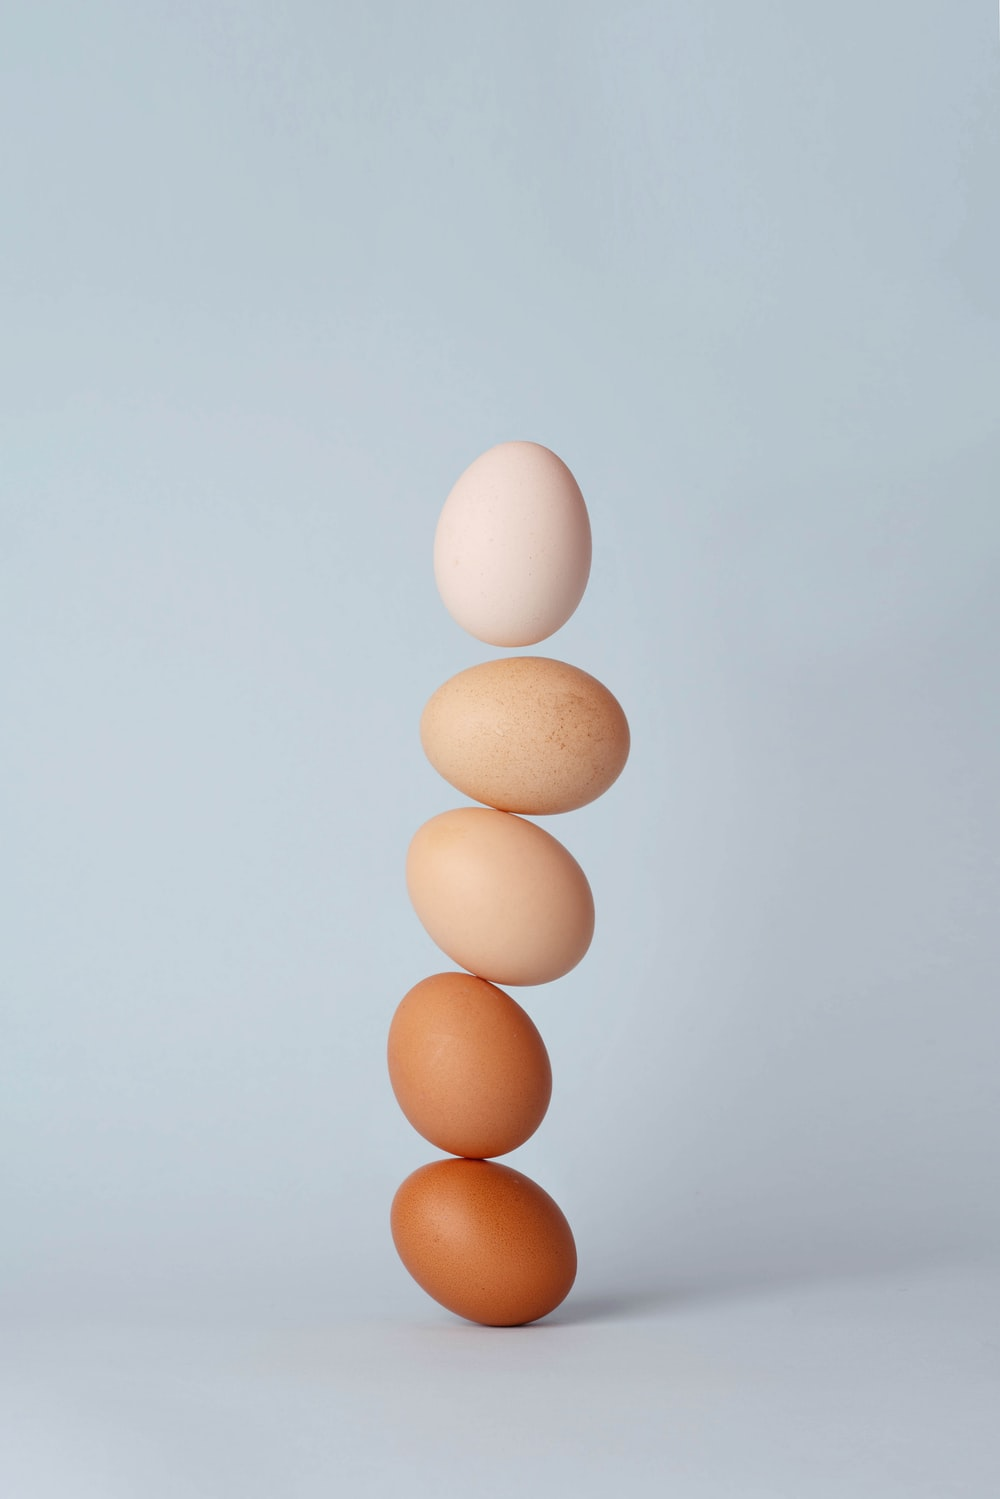 best 20 egg pictures images download free photos on unsplash